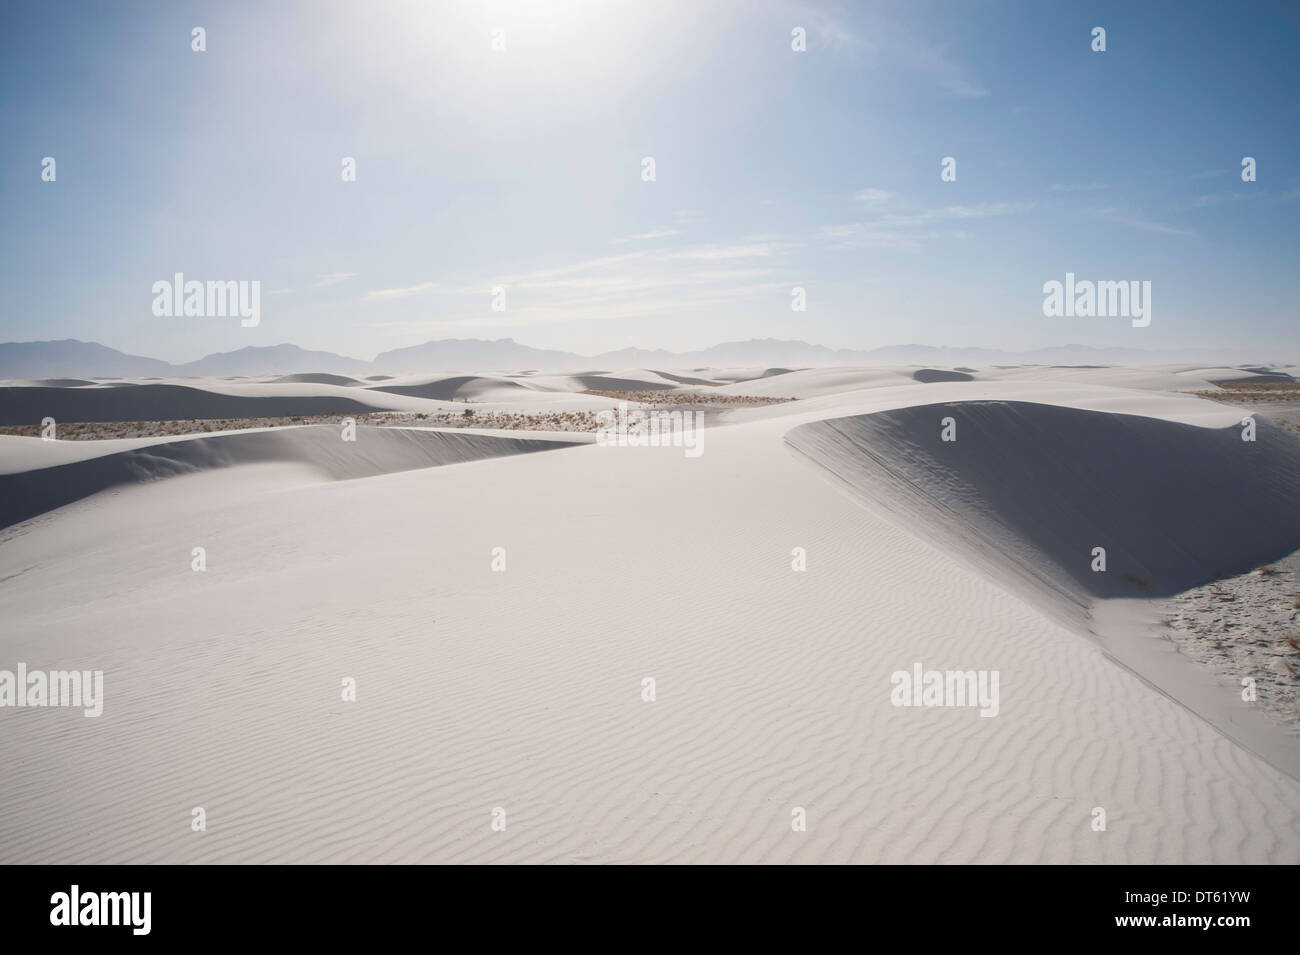 Rolling sand dunes, White sands, New Mexico, USA - Stock Image